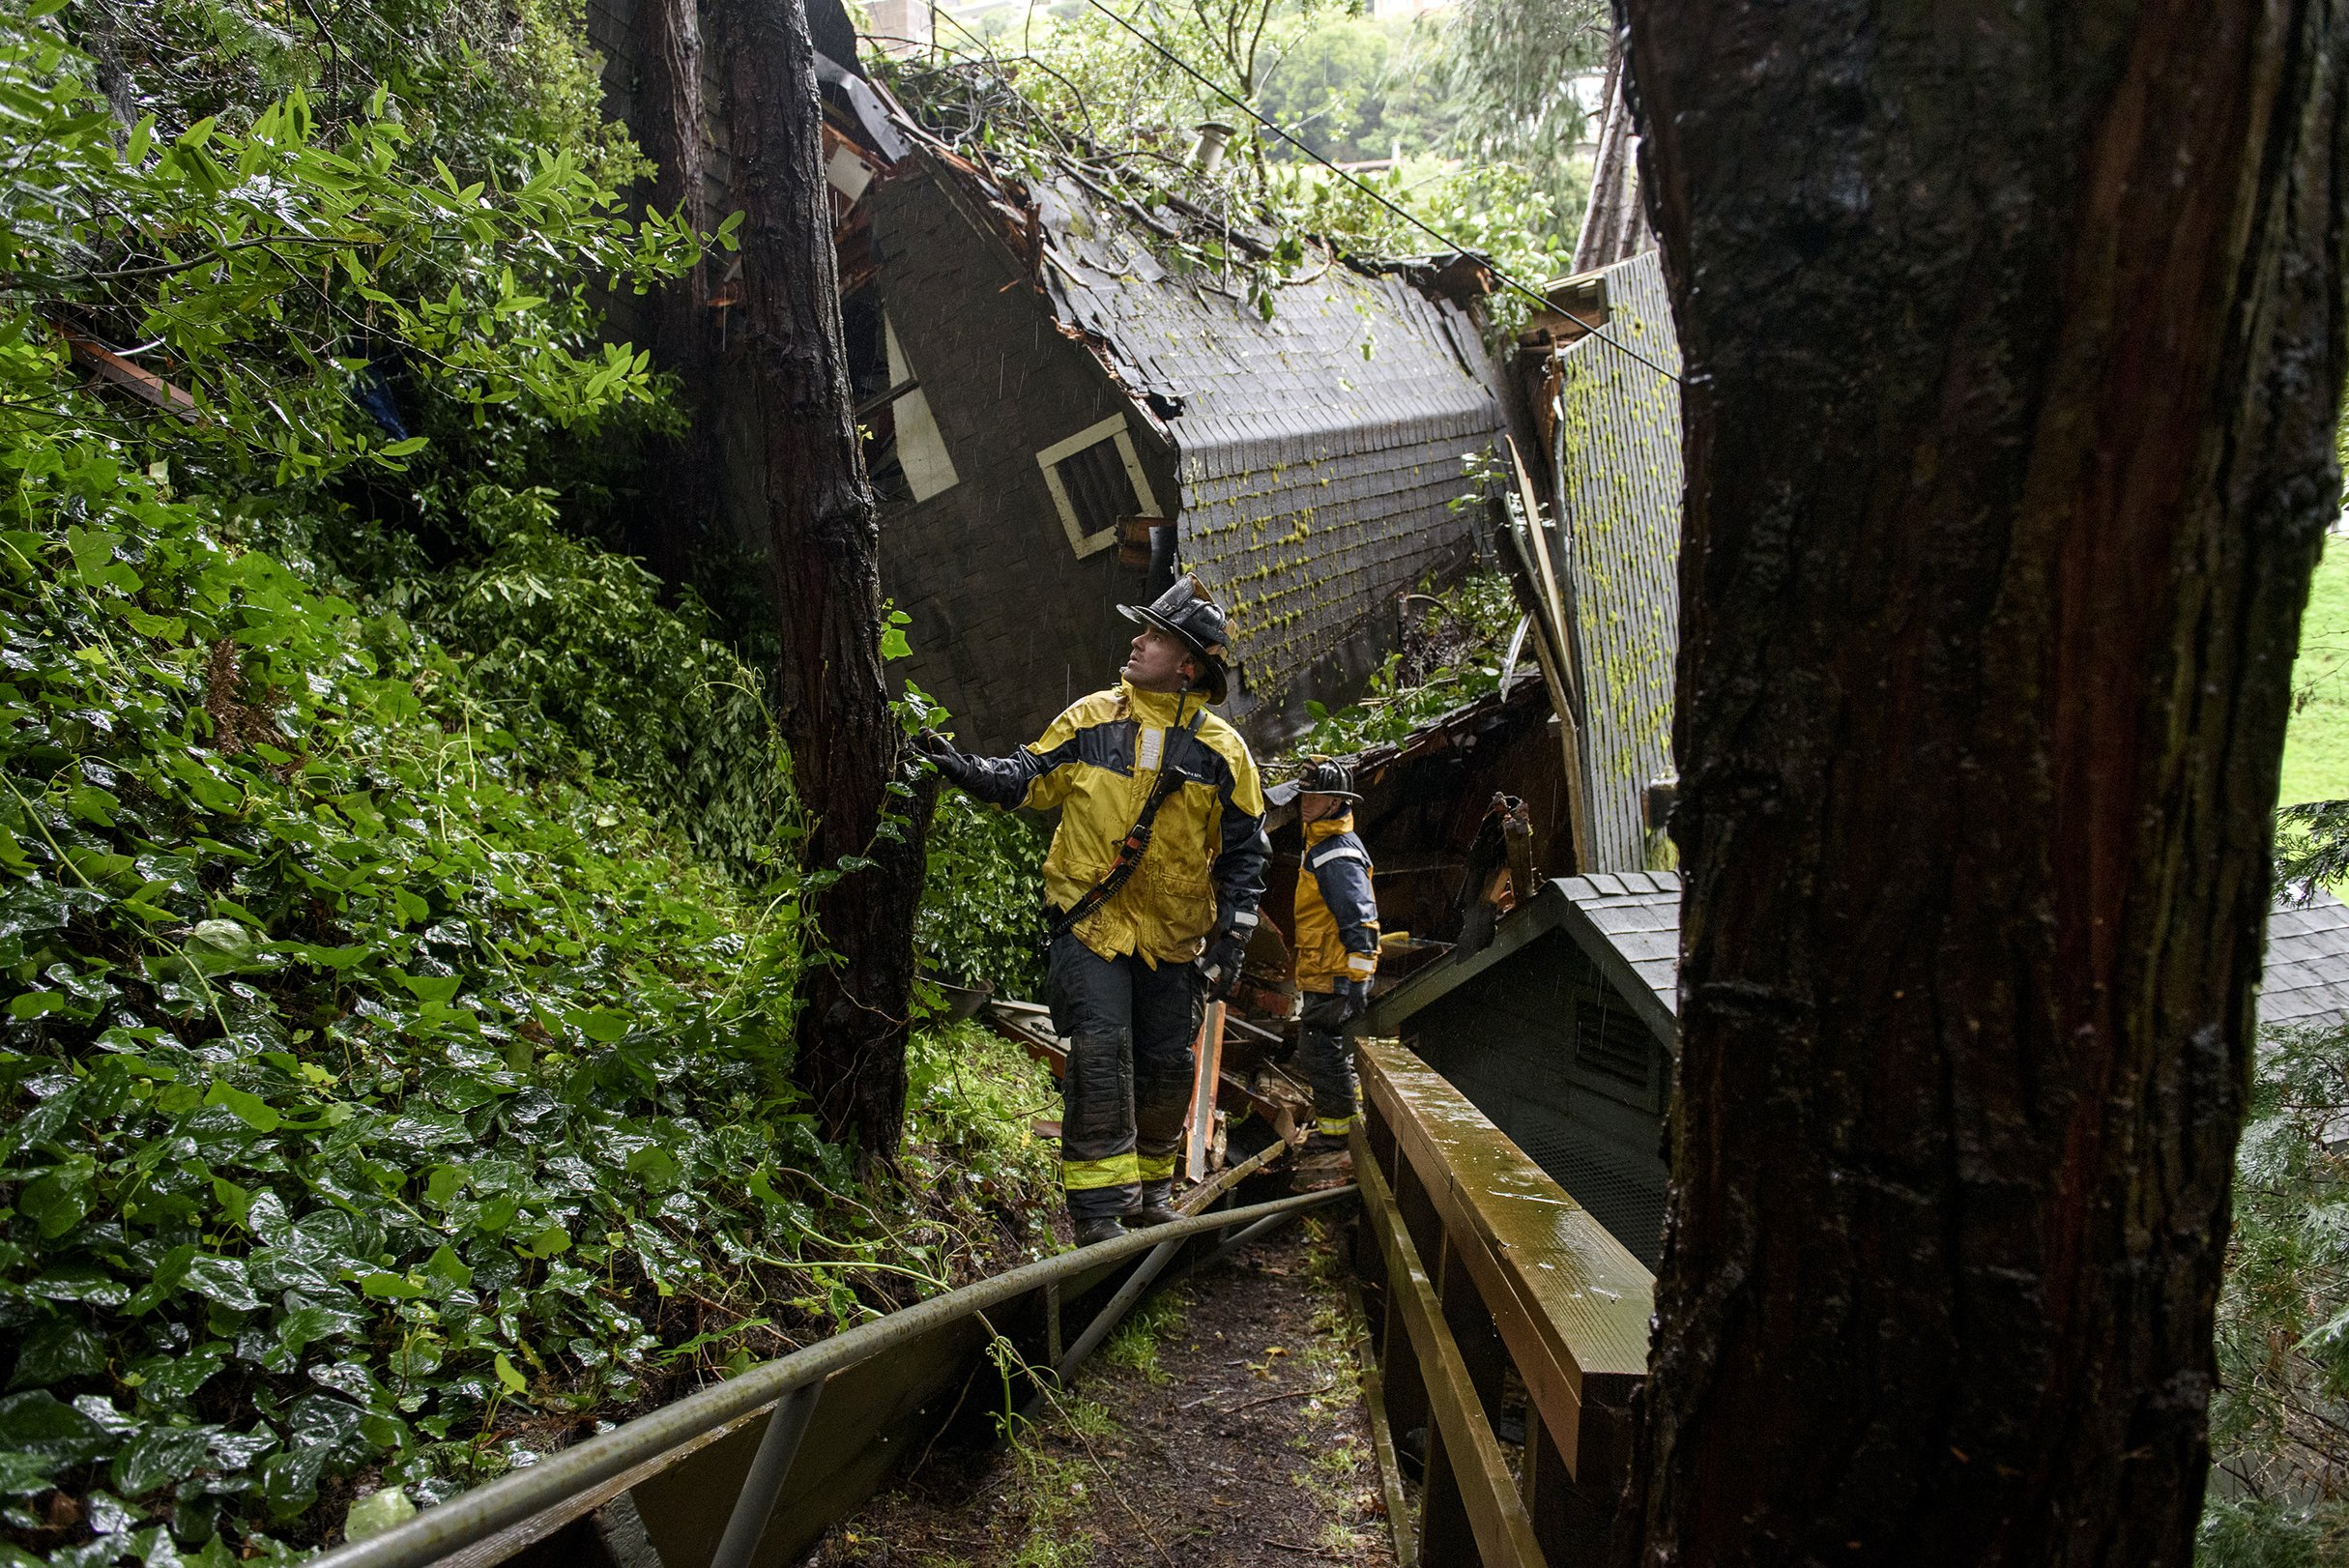 Mudslide sweeps house off hill as storm pounds California